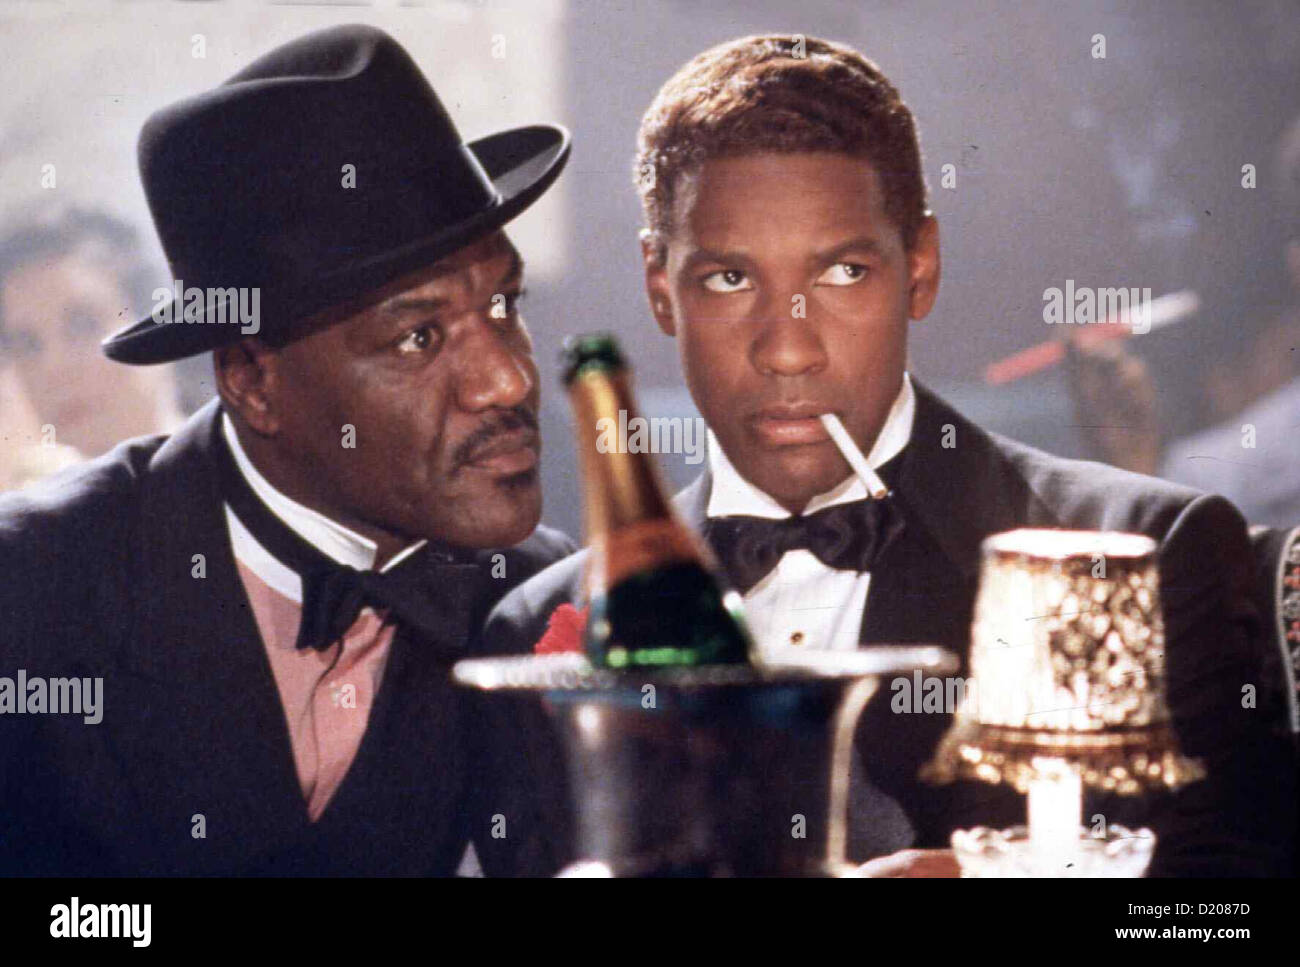 Malcolm X Malcolm X Delroy Lindo, Denzel Washington Malcolm X (Denzel Washington) wird von West Indian Archie (Delroy Imagen De Stock